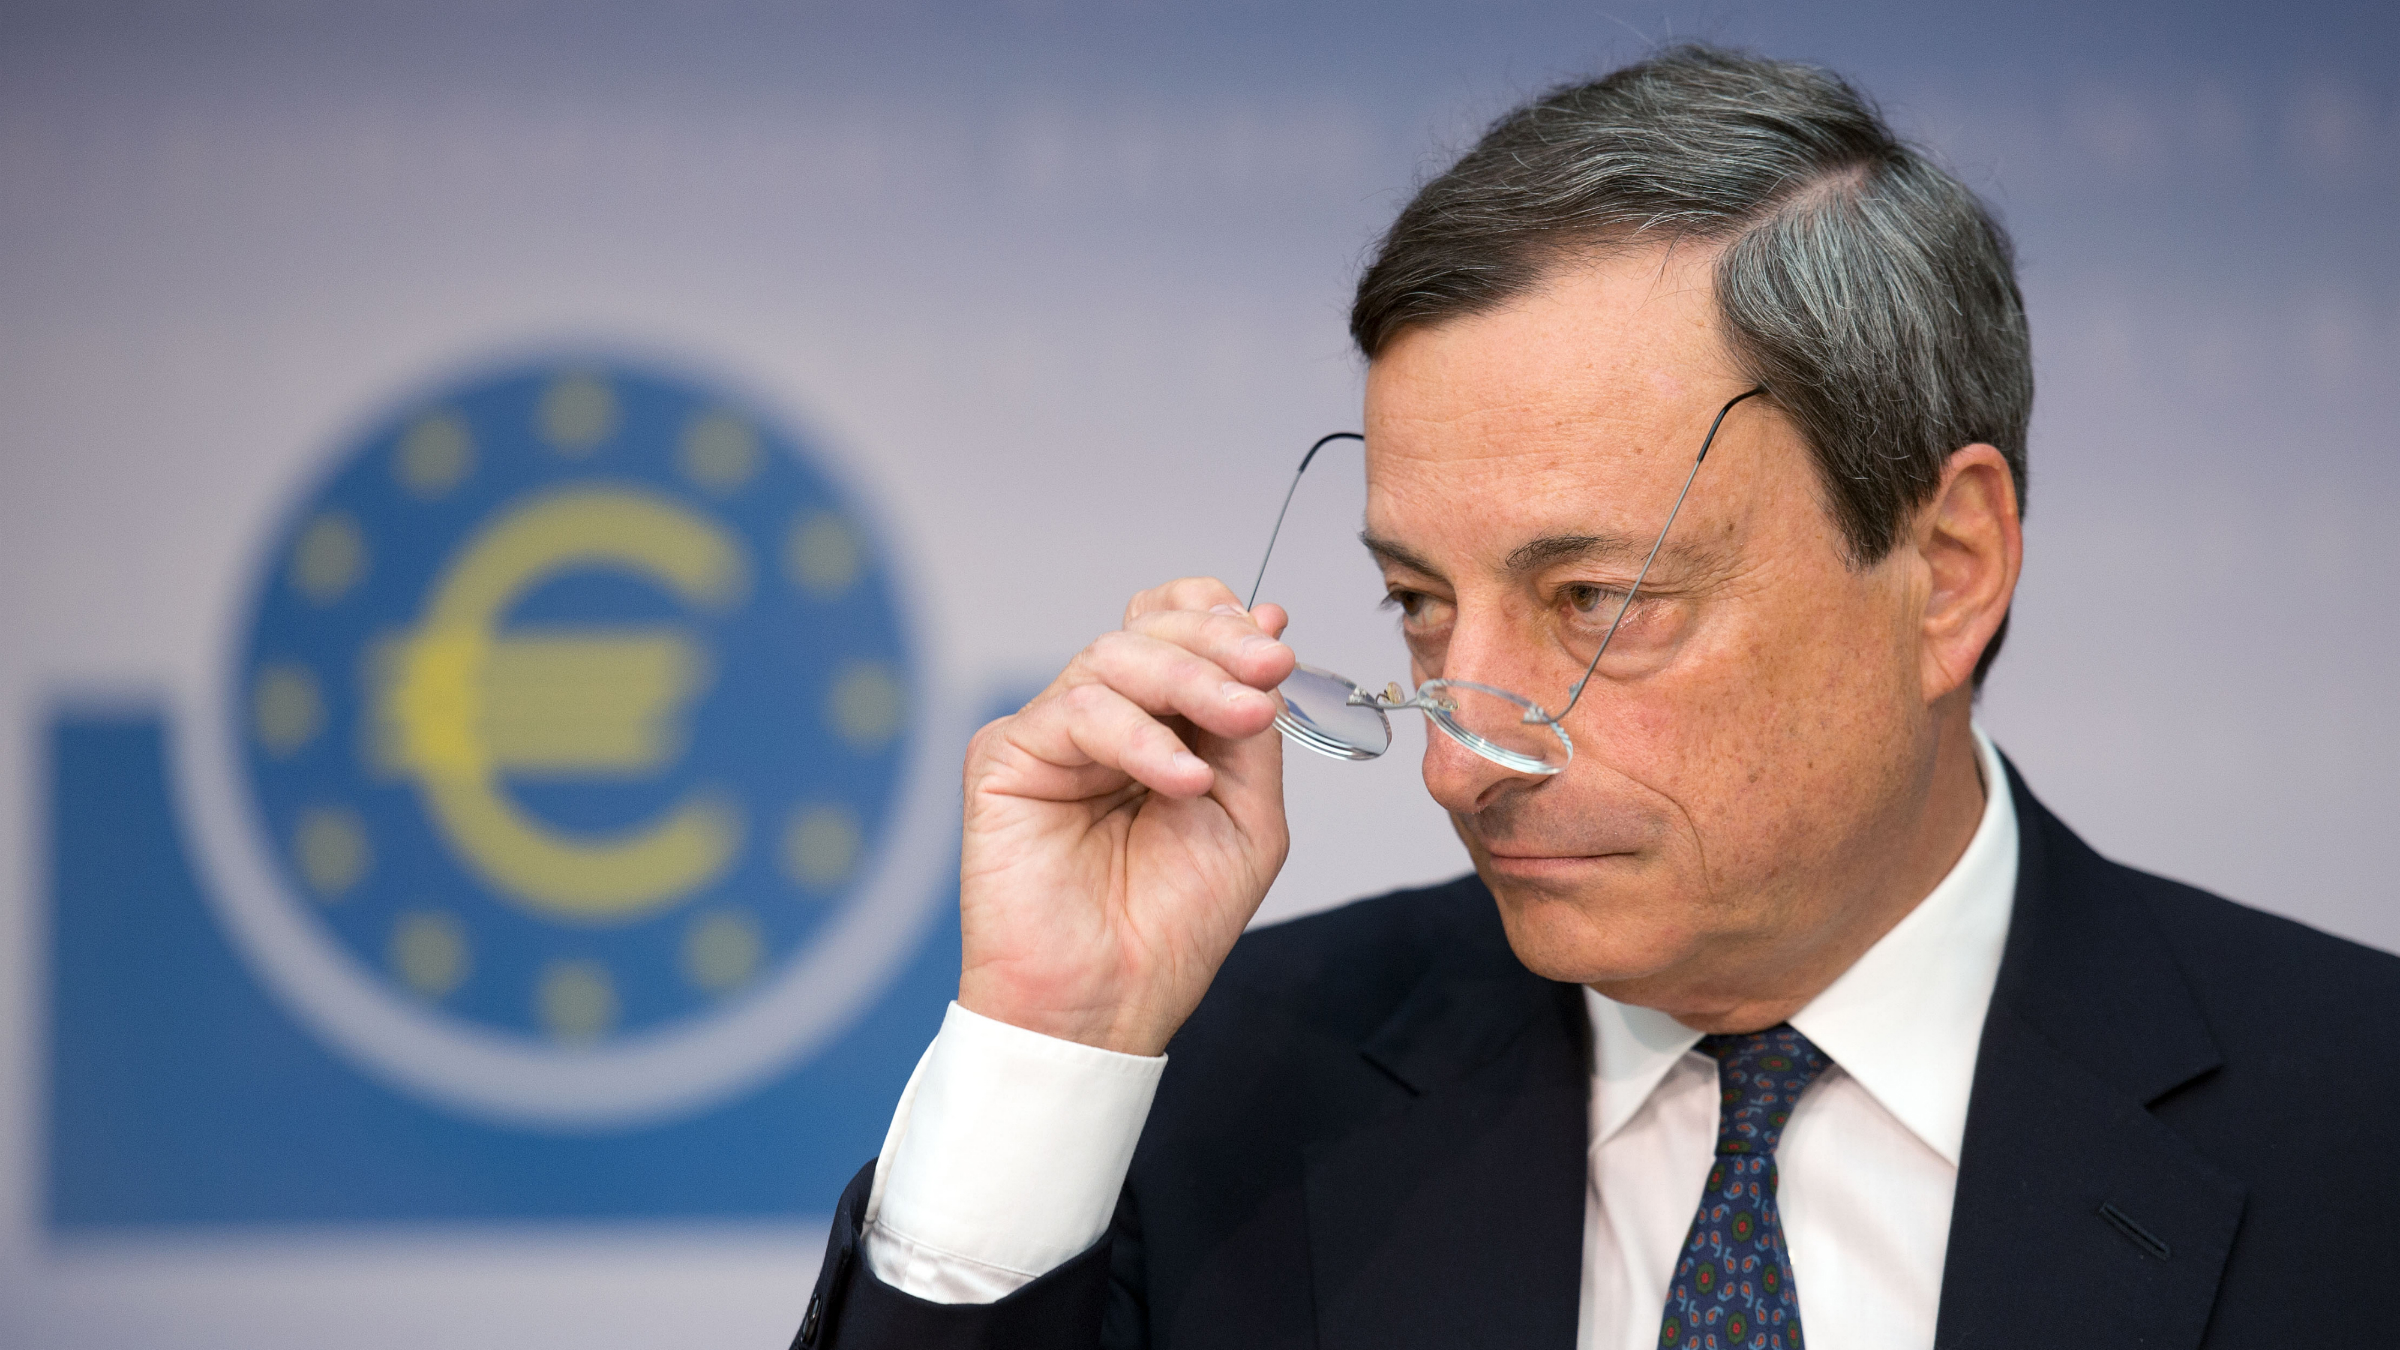 "The president of the European Central Bank (ECB), Mario Draghi holds, in Frankfurt at a press conference on the outcome of the Council meeting his glasses in his hand (photo from 09/06/12). The former president Kannegiesser total metal has criticized the European Central Bank (ECB) is sharp. You see the role of the ECB now critical Kannegiesser said the newspaper ""Die Welt"" (Thursday edition of 11/08/12). ""Geldwertstabilitaet is no longer in the first place, nor the political independence."" That seems to be slowly softened, complained Kannegiesser, who resigned in September 2012 after twelve years in office. Perhaps you have ""made the goat for Gaertner"" with Draghi. (DAPD to-text) Photo: Thomas Lohnes / DAPD"